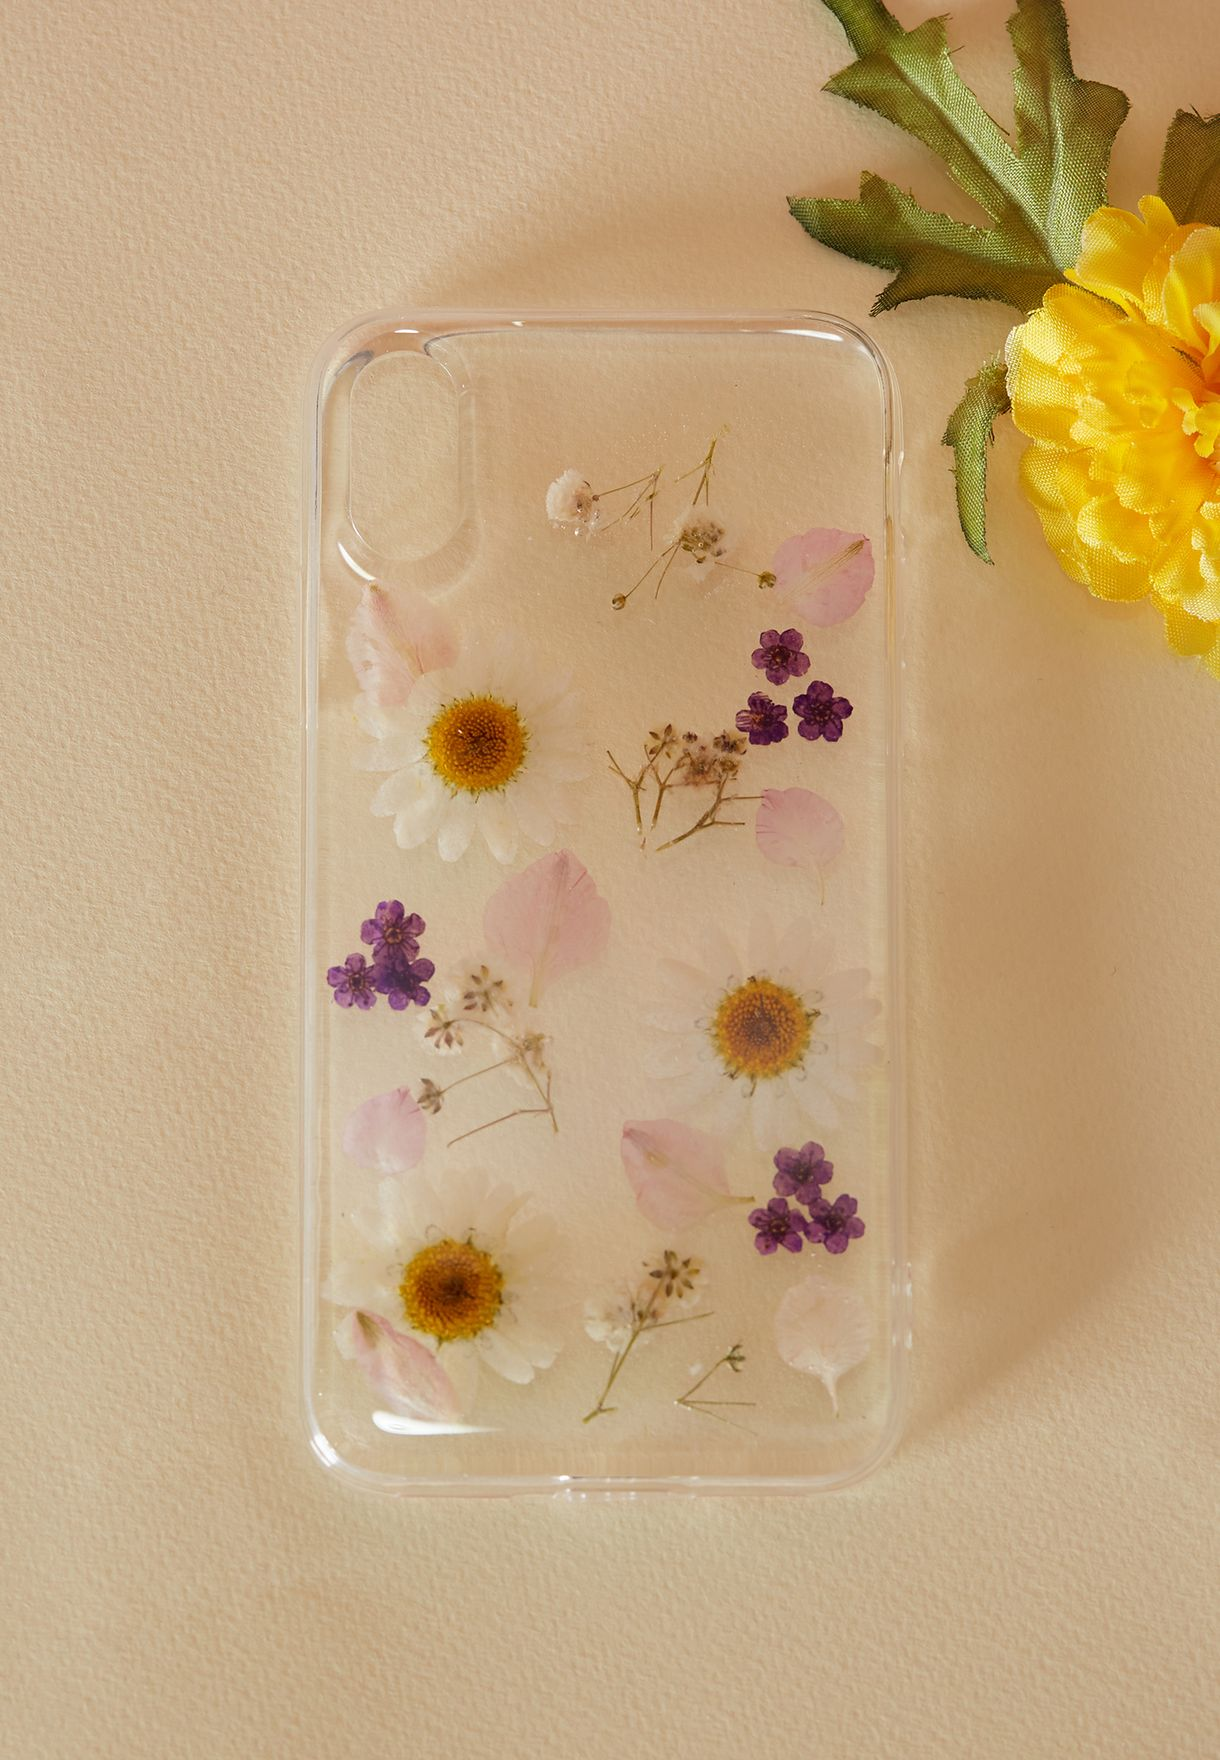 Floral iPhone X / XS MAX / 11 case